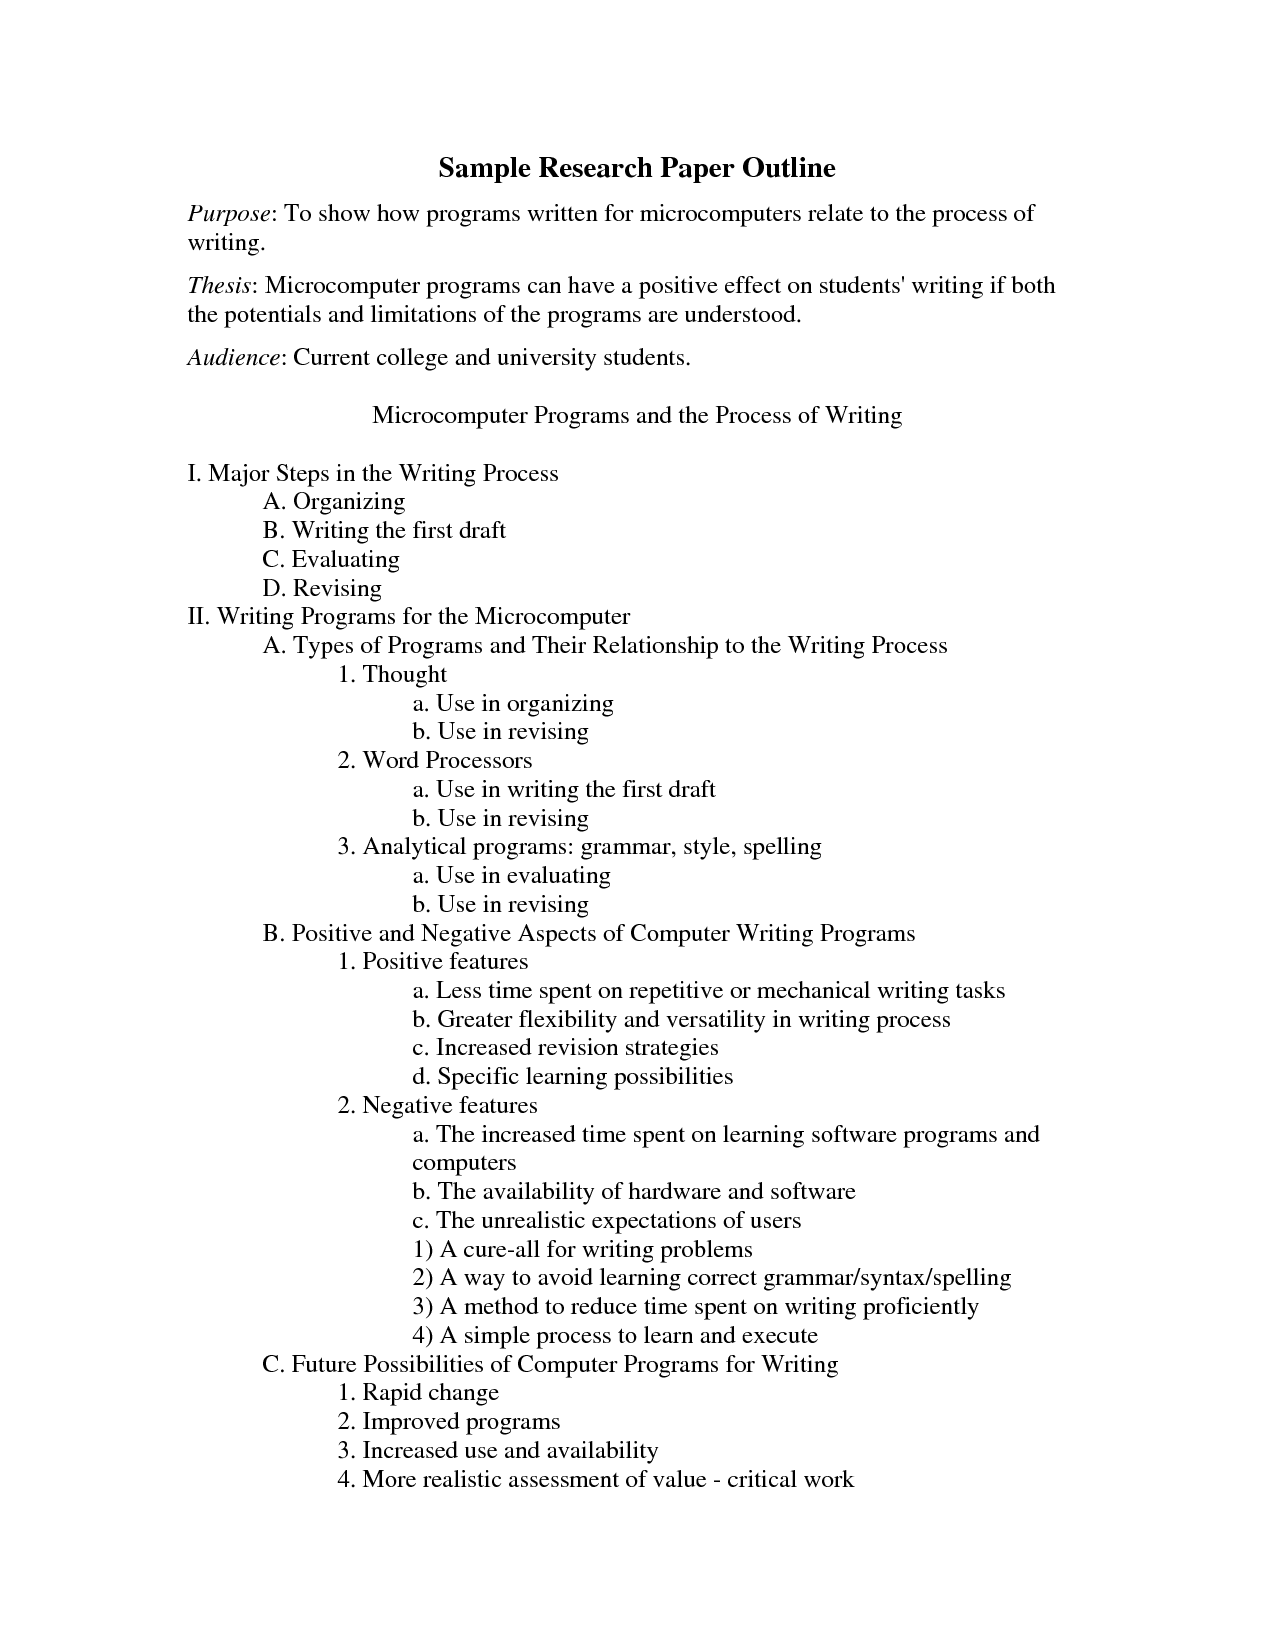 003 College Research Paper Outlines 477364 How To Do An For Stupendous Outline A Example Write Sample